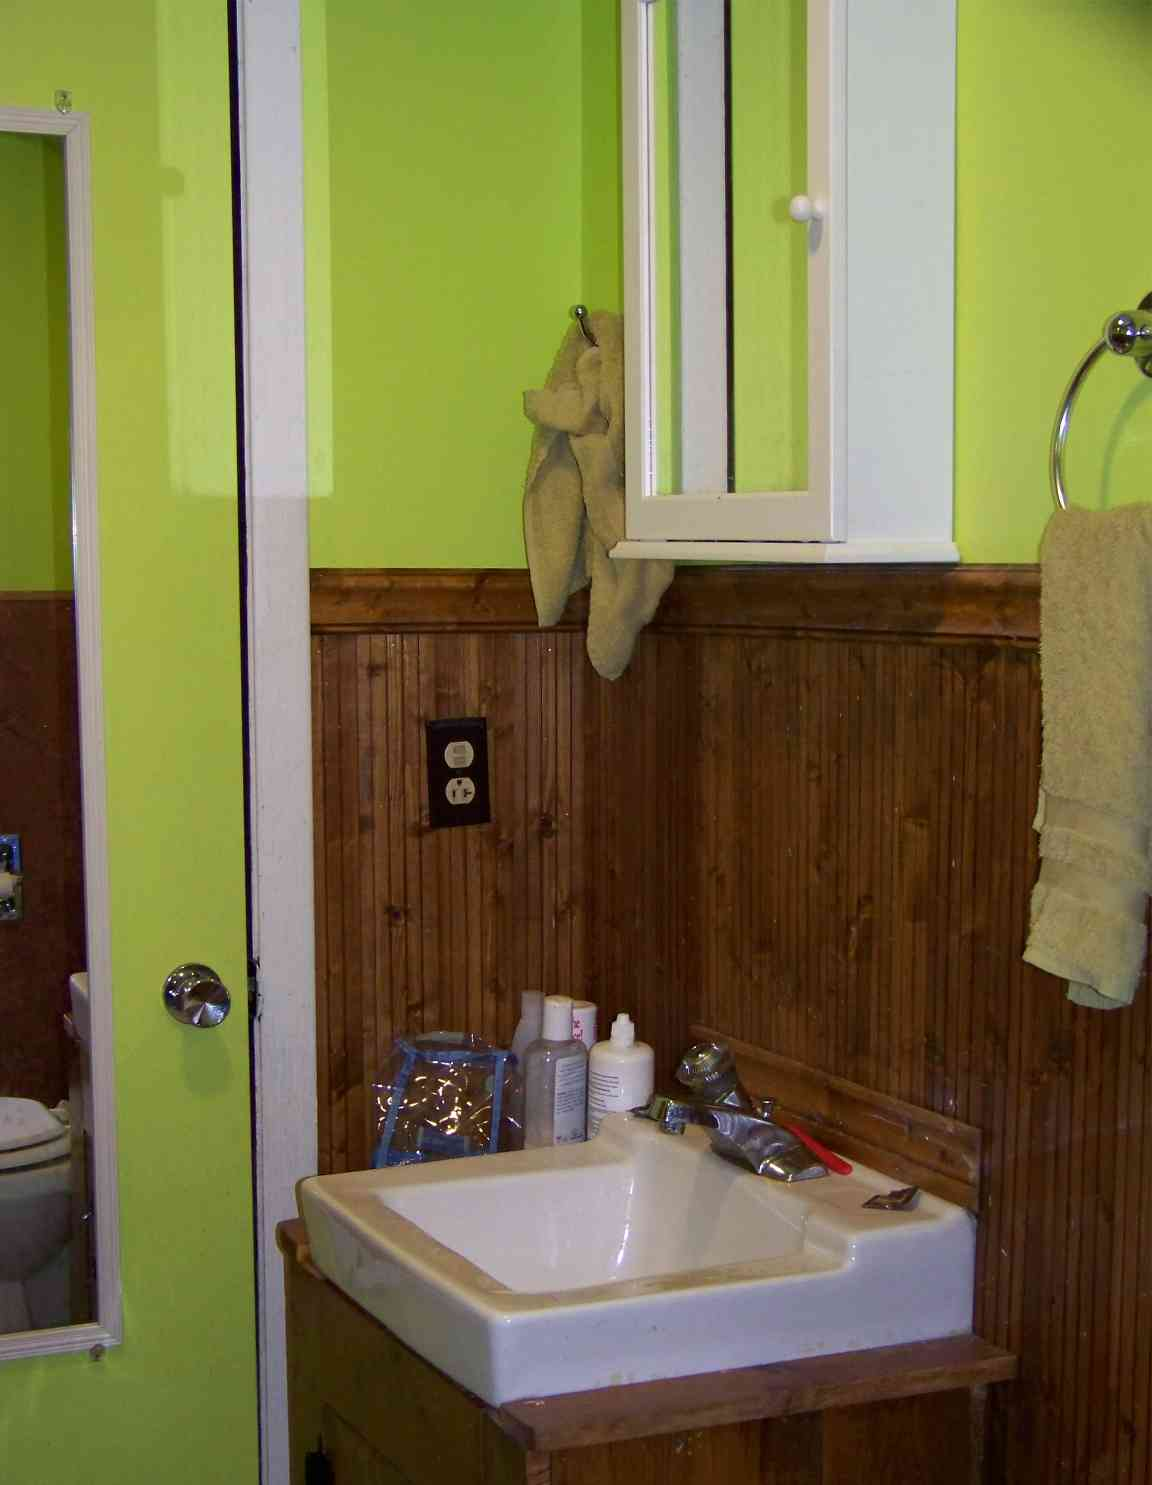 Bathrom is recently redone with high-end flooring and cheerful colors